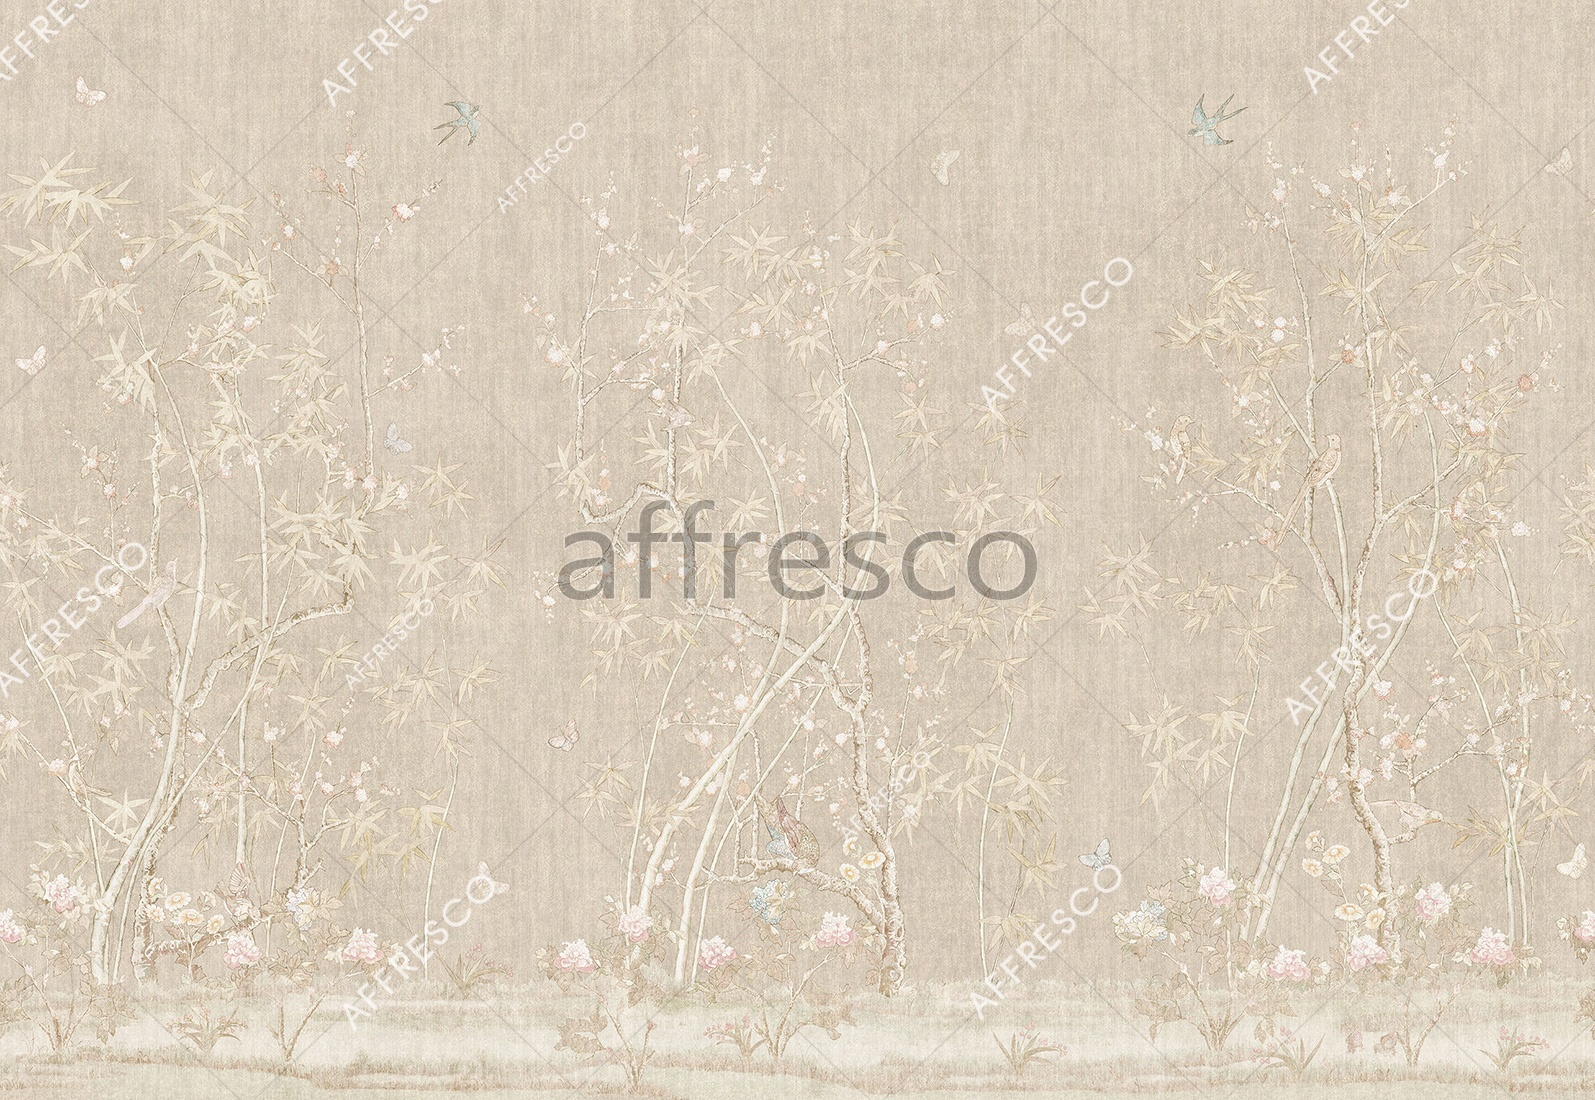 ID136149 | Gardens |  | Affresco Factory